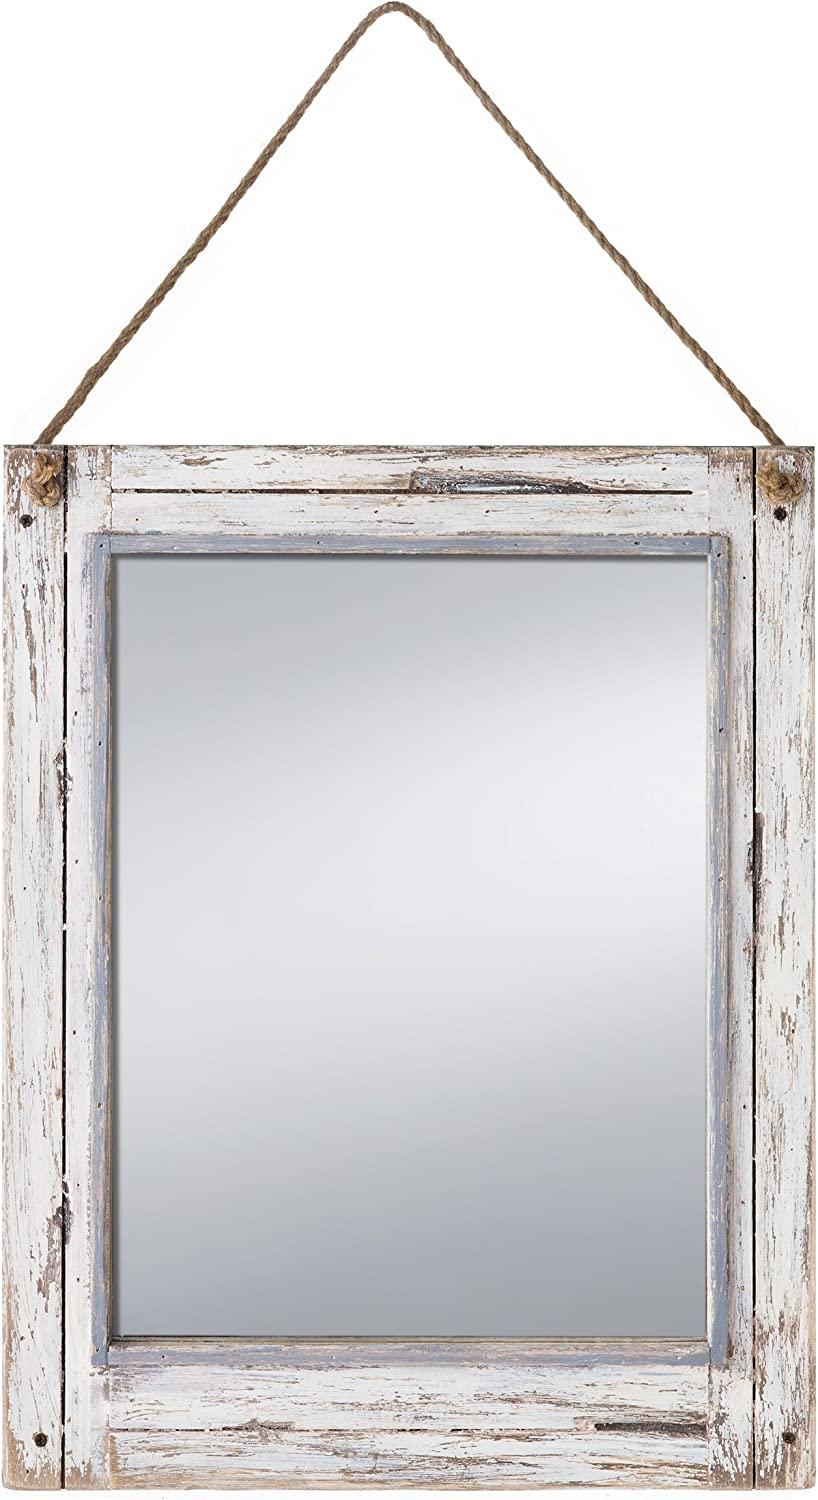 Prinz Rustic River Mirror with Wood Border in Distressed White Finish, 15  X 19.5